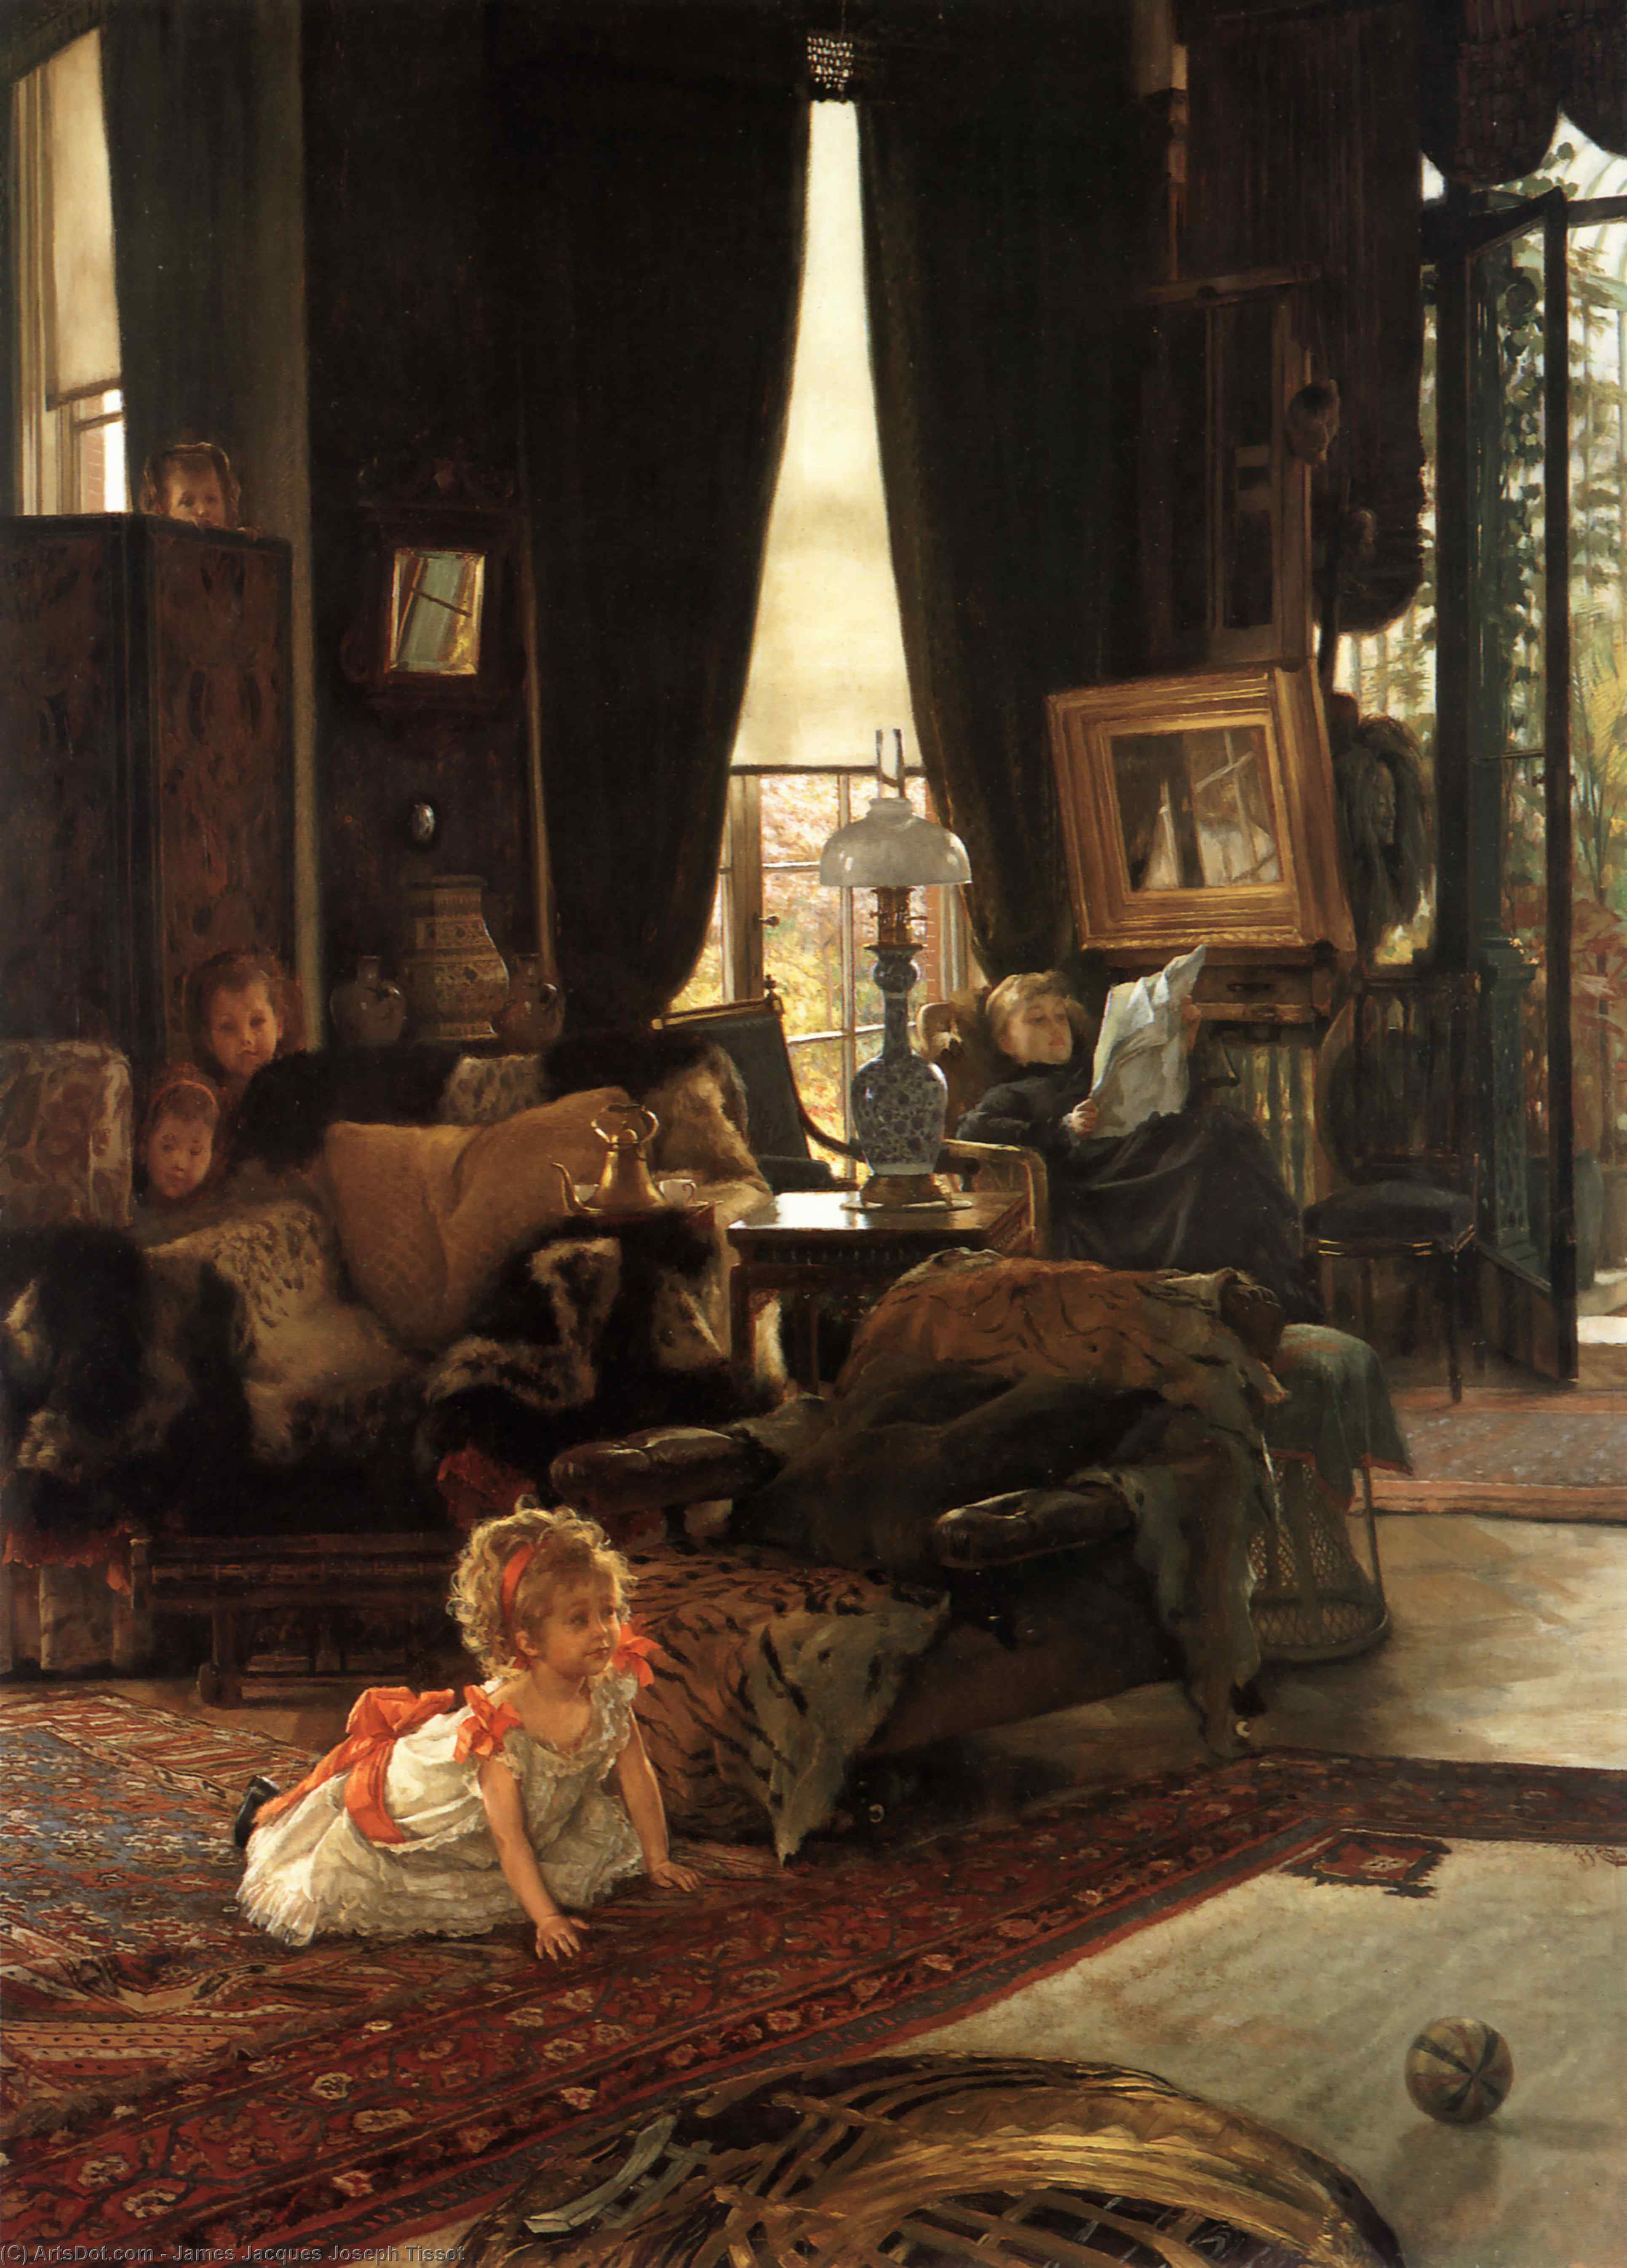 Wikioo.org - The Encyclopedia of Fine Arts - Painting, Artwork by James Jacques Joseph Tissot - Hide and Seek